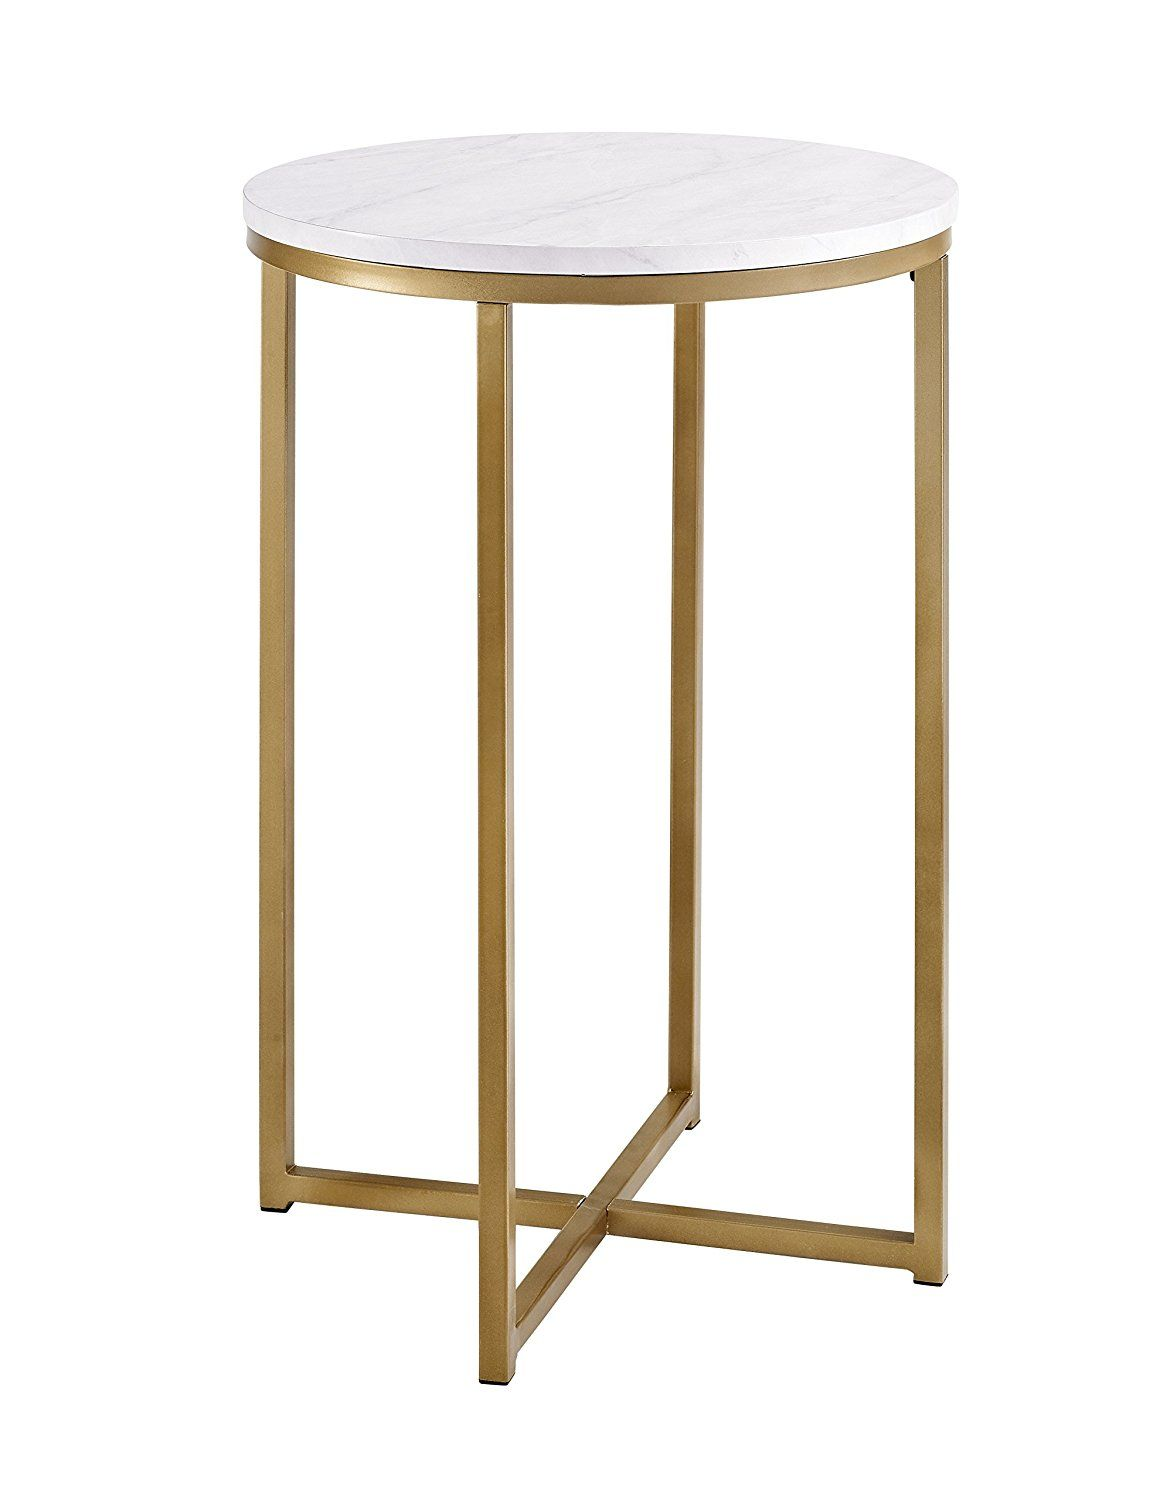 furniture round side table marble gold kitchen accent with top dining teak set small black wood end tables dresser target lamp modern design living room ashley bedroom rustic